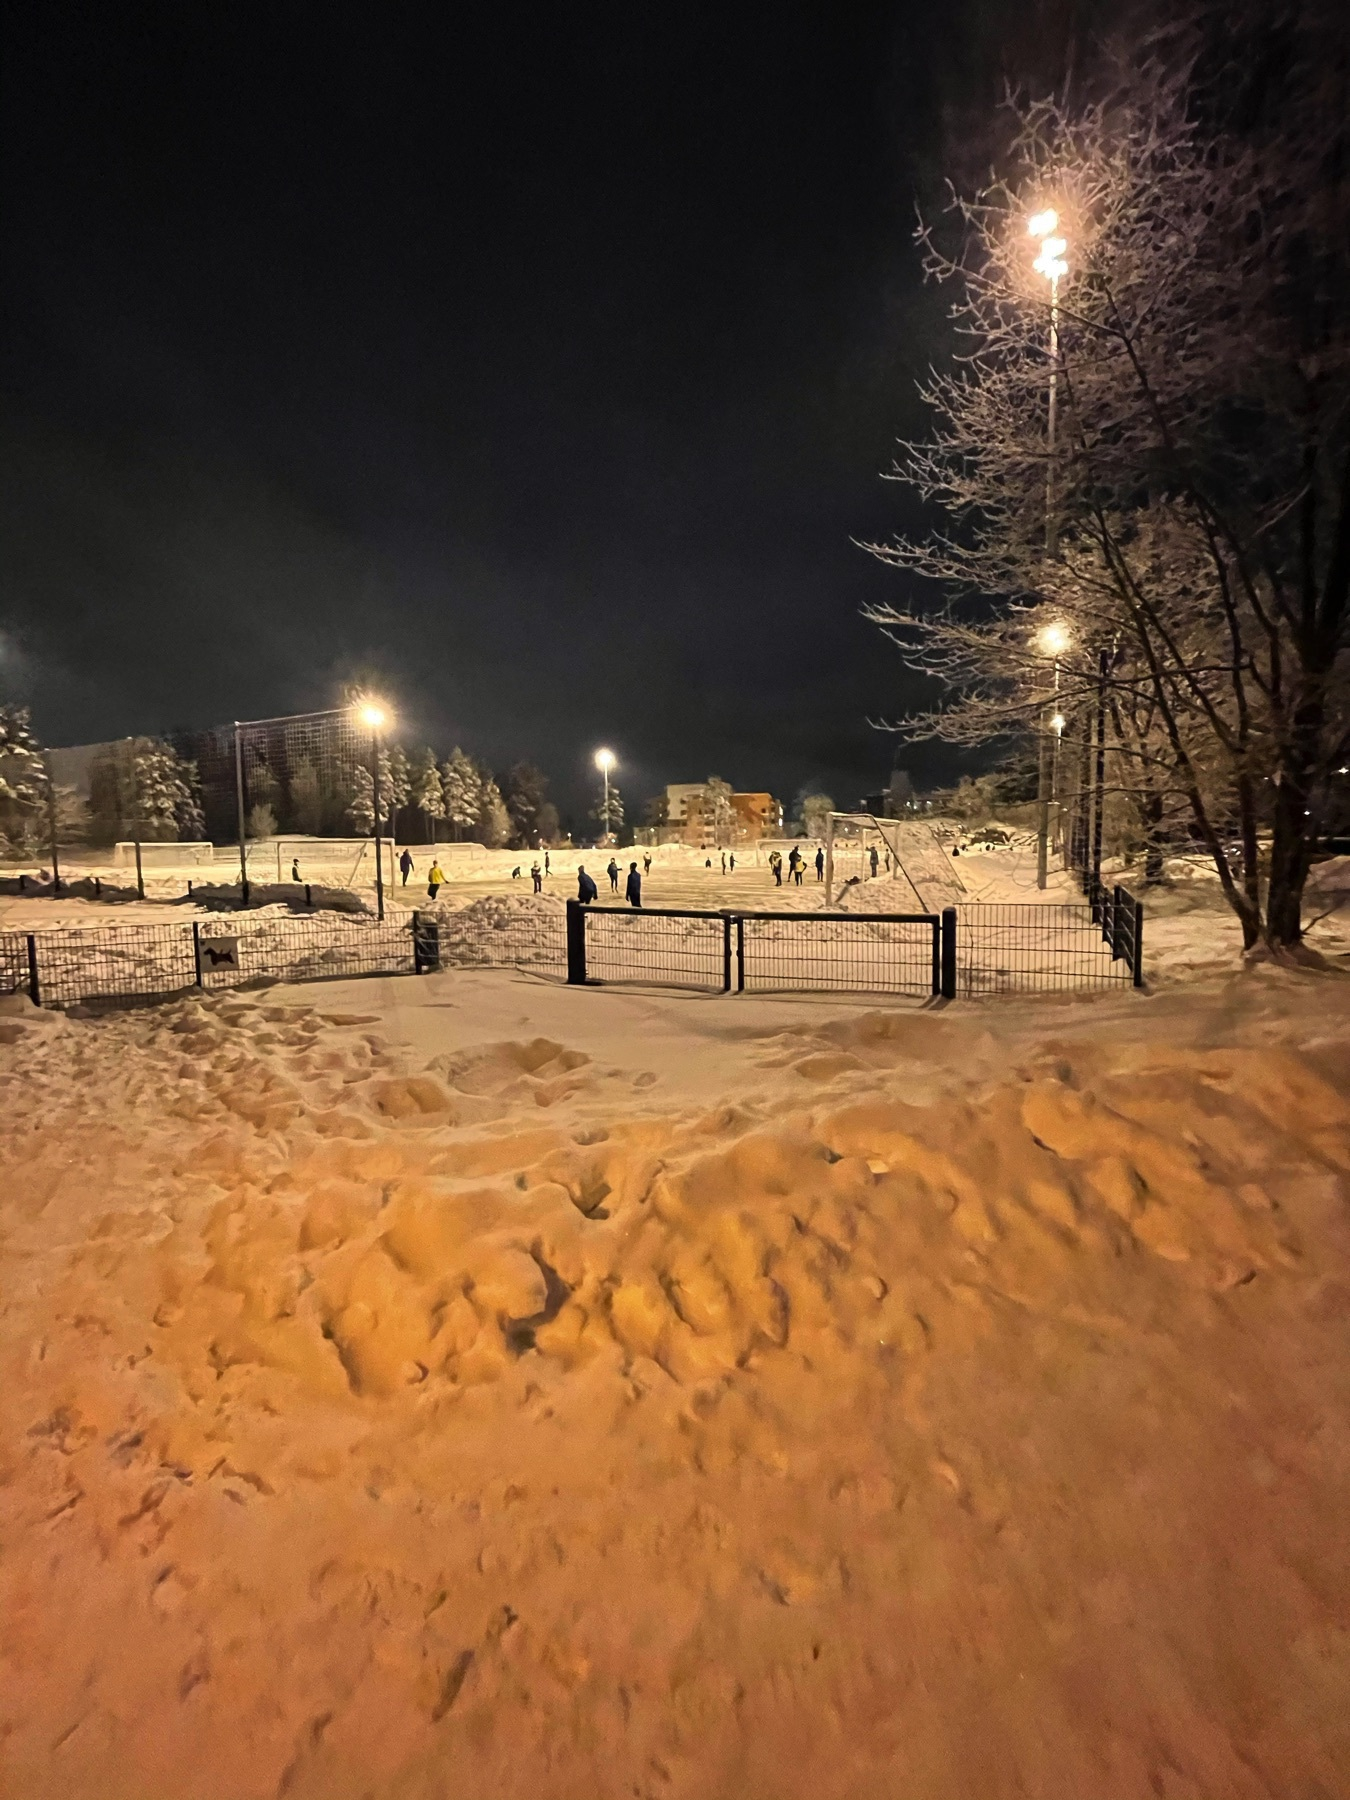 snow, football pitch with a plowed green patch 20+ kids playing soccer